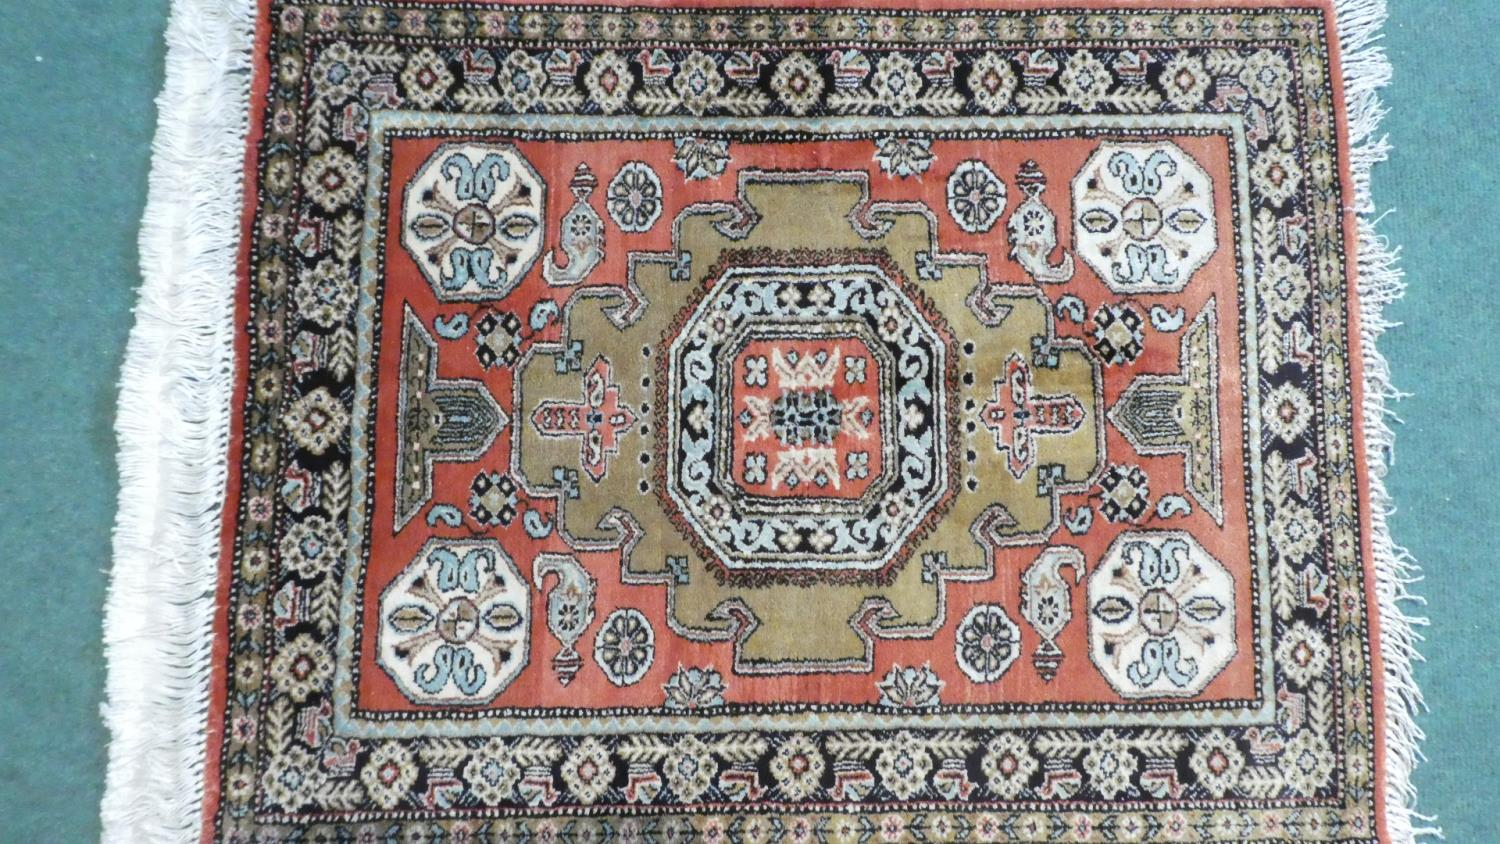 Lot 179 - A Persian Hand Made Silk Qum Rug. 74x58